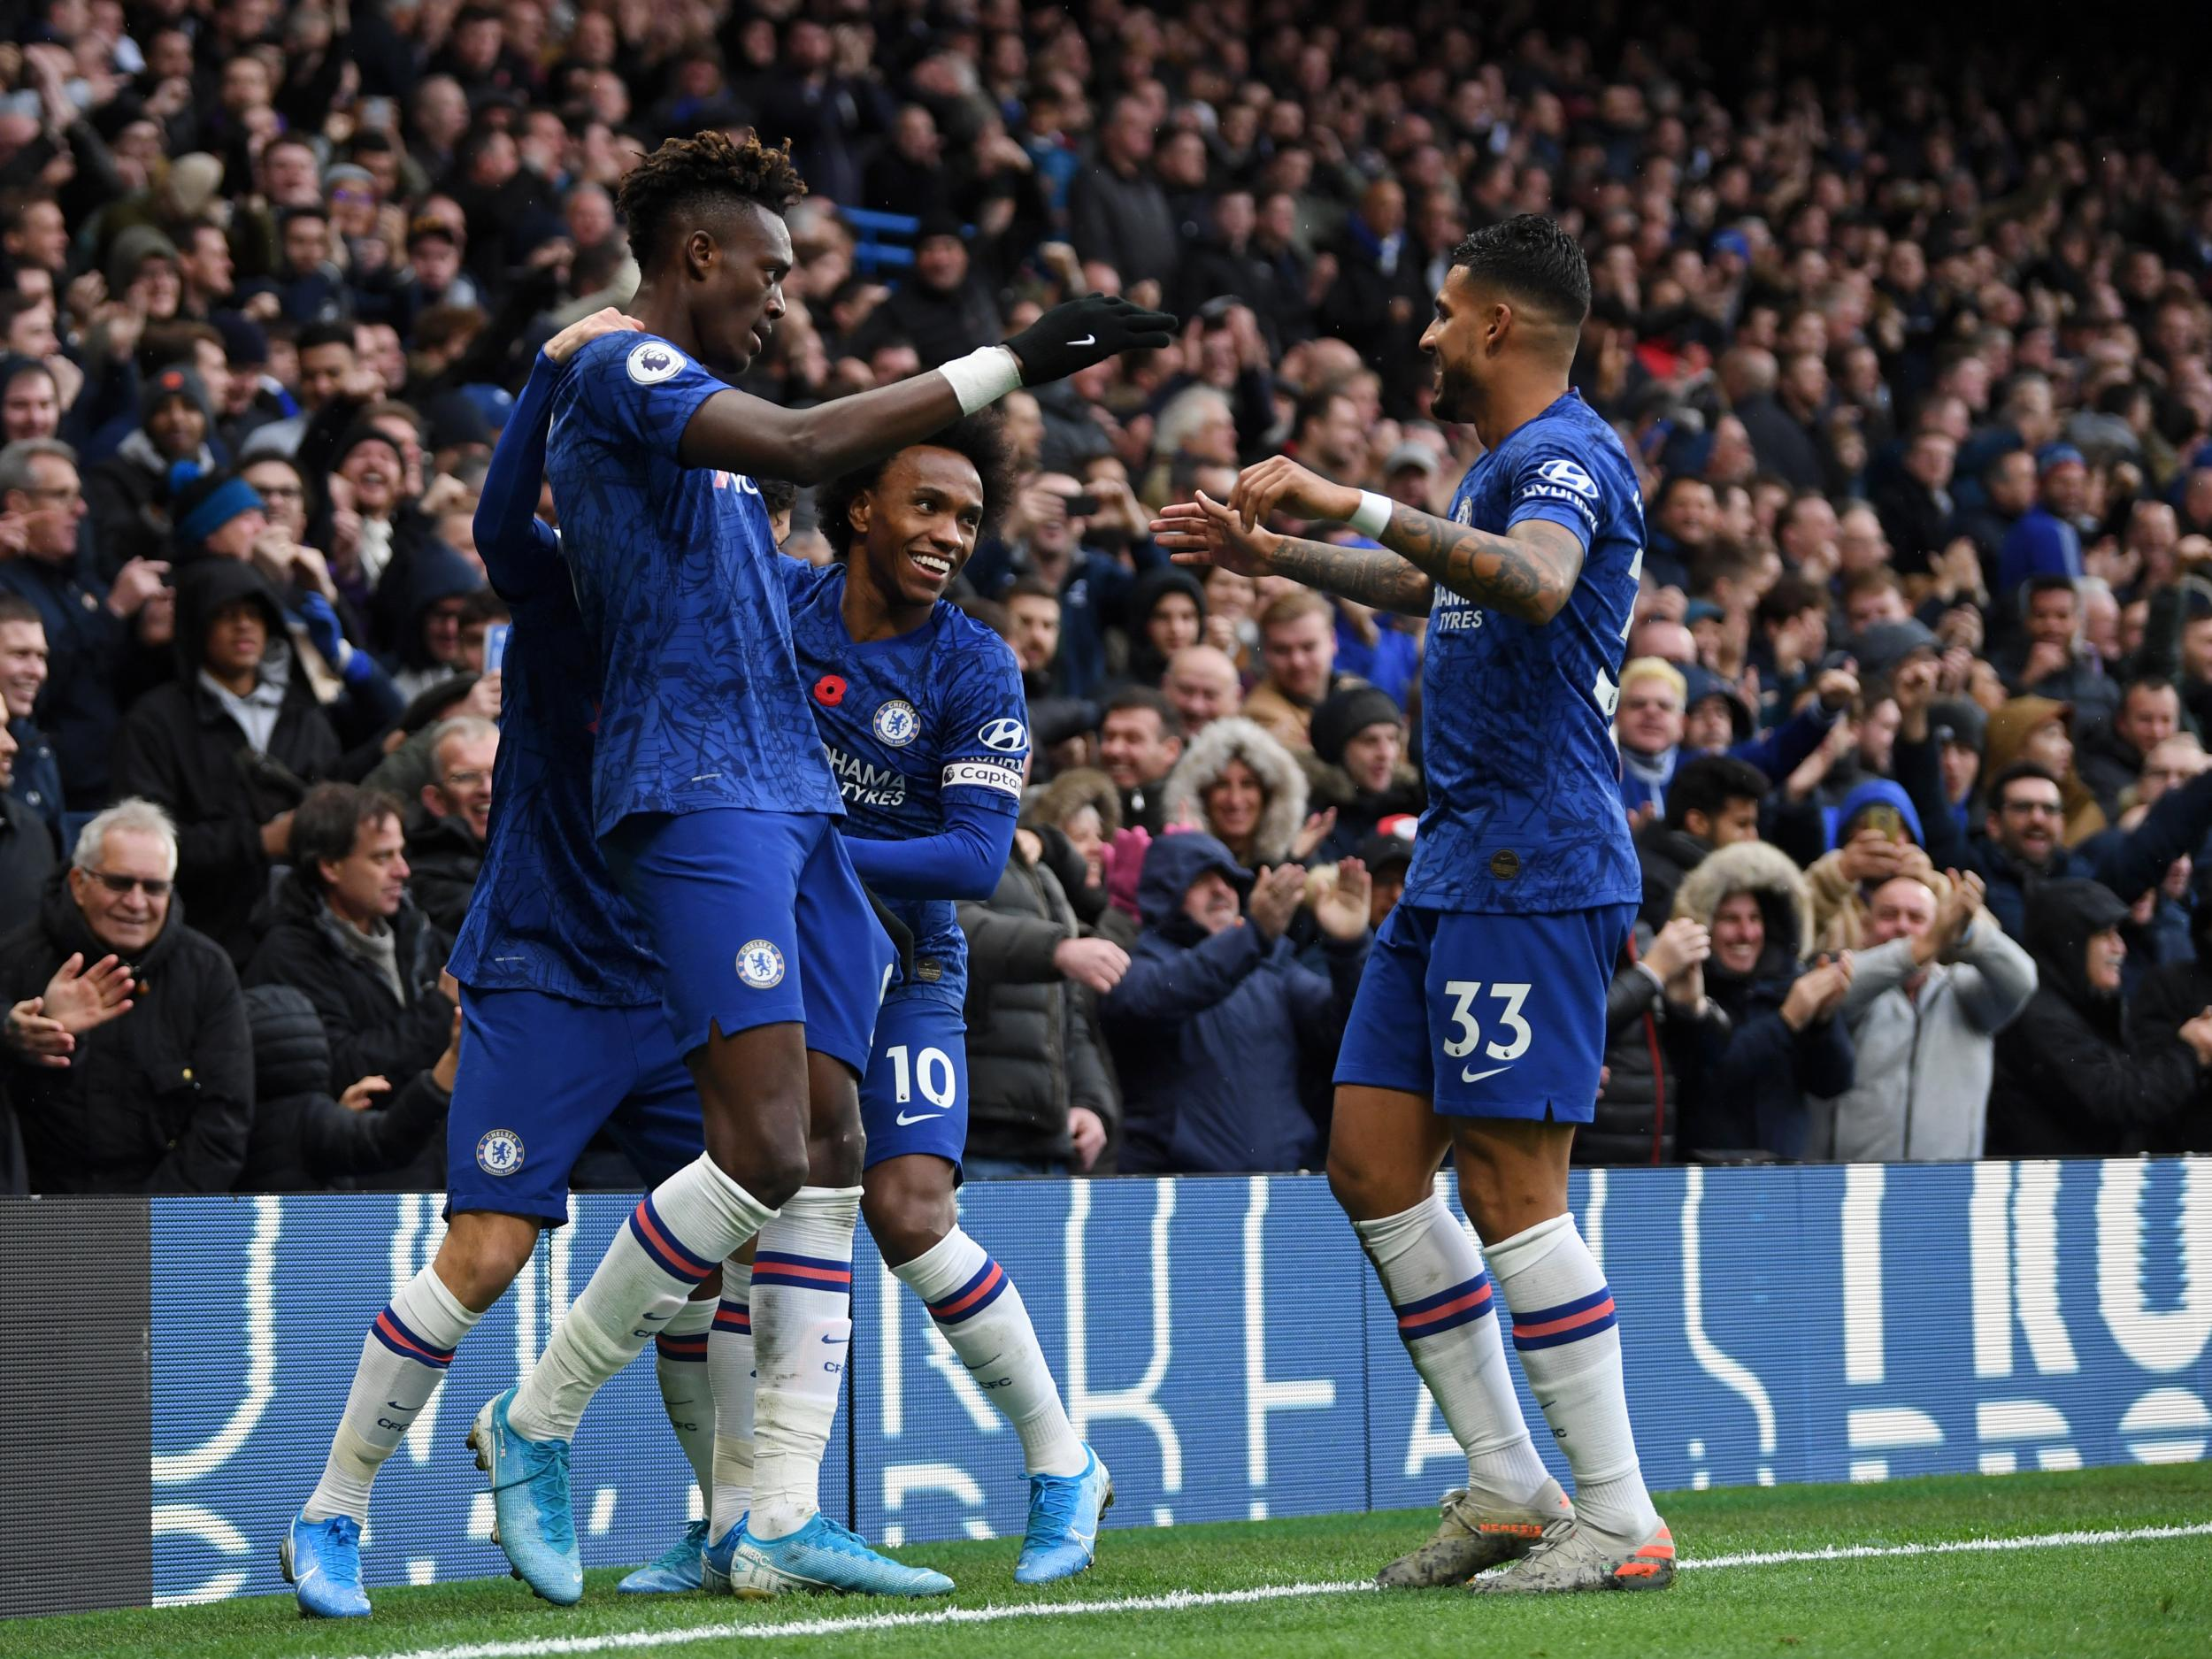 Chelsea vs Crystal Palace result: Five things we learned as Frank Lampard's side go second with win